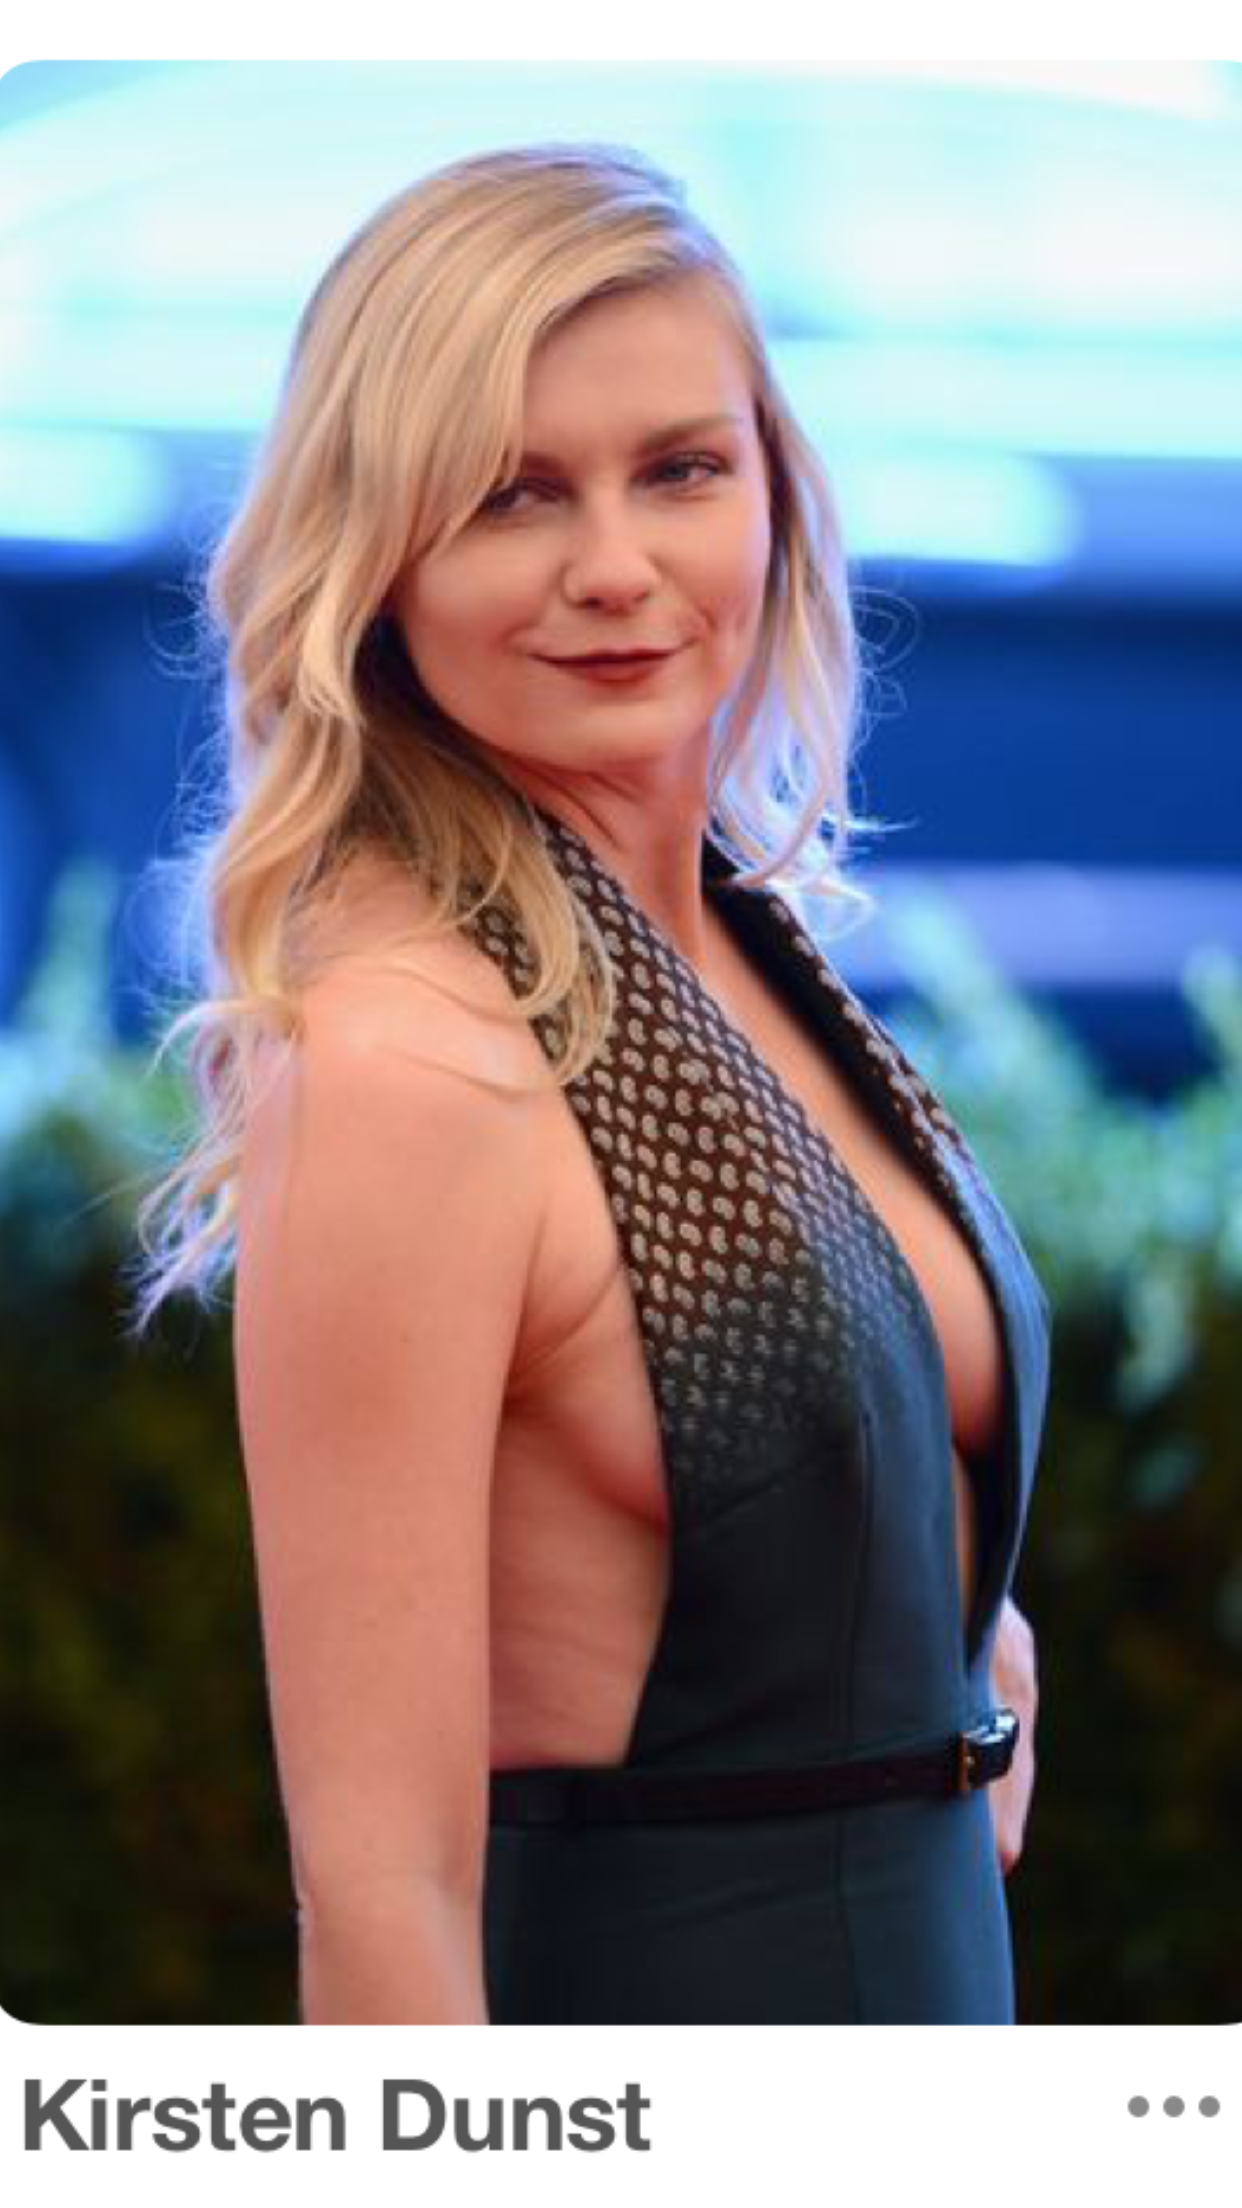 Kirsten dunst old lady tits nudes (27 images)